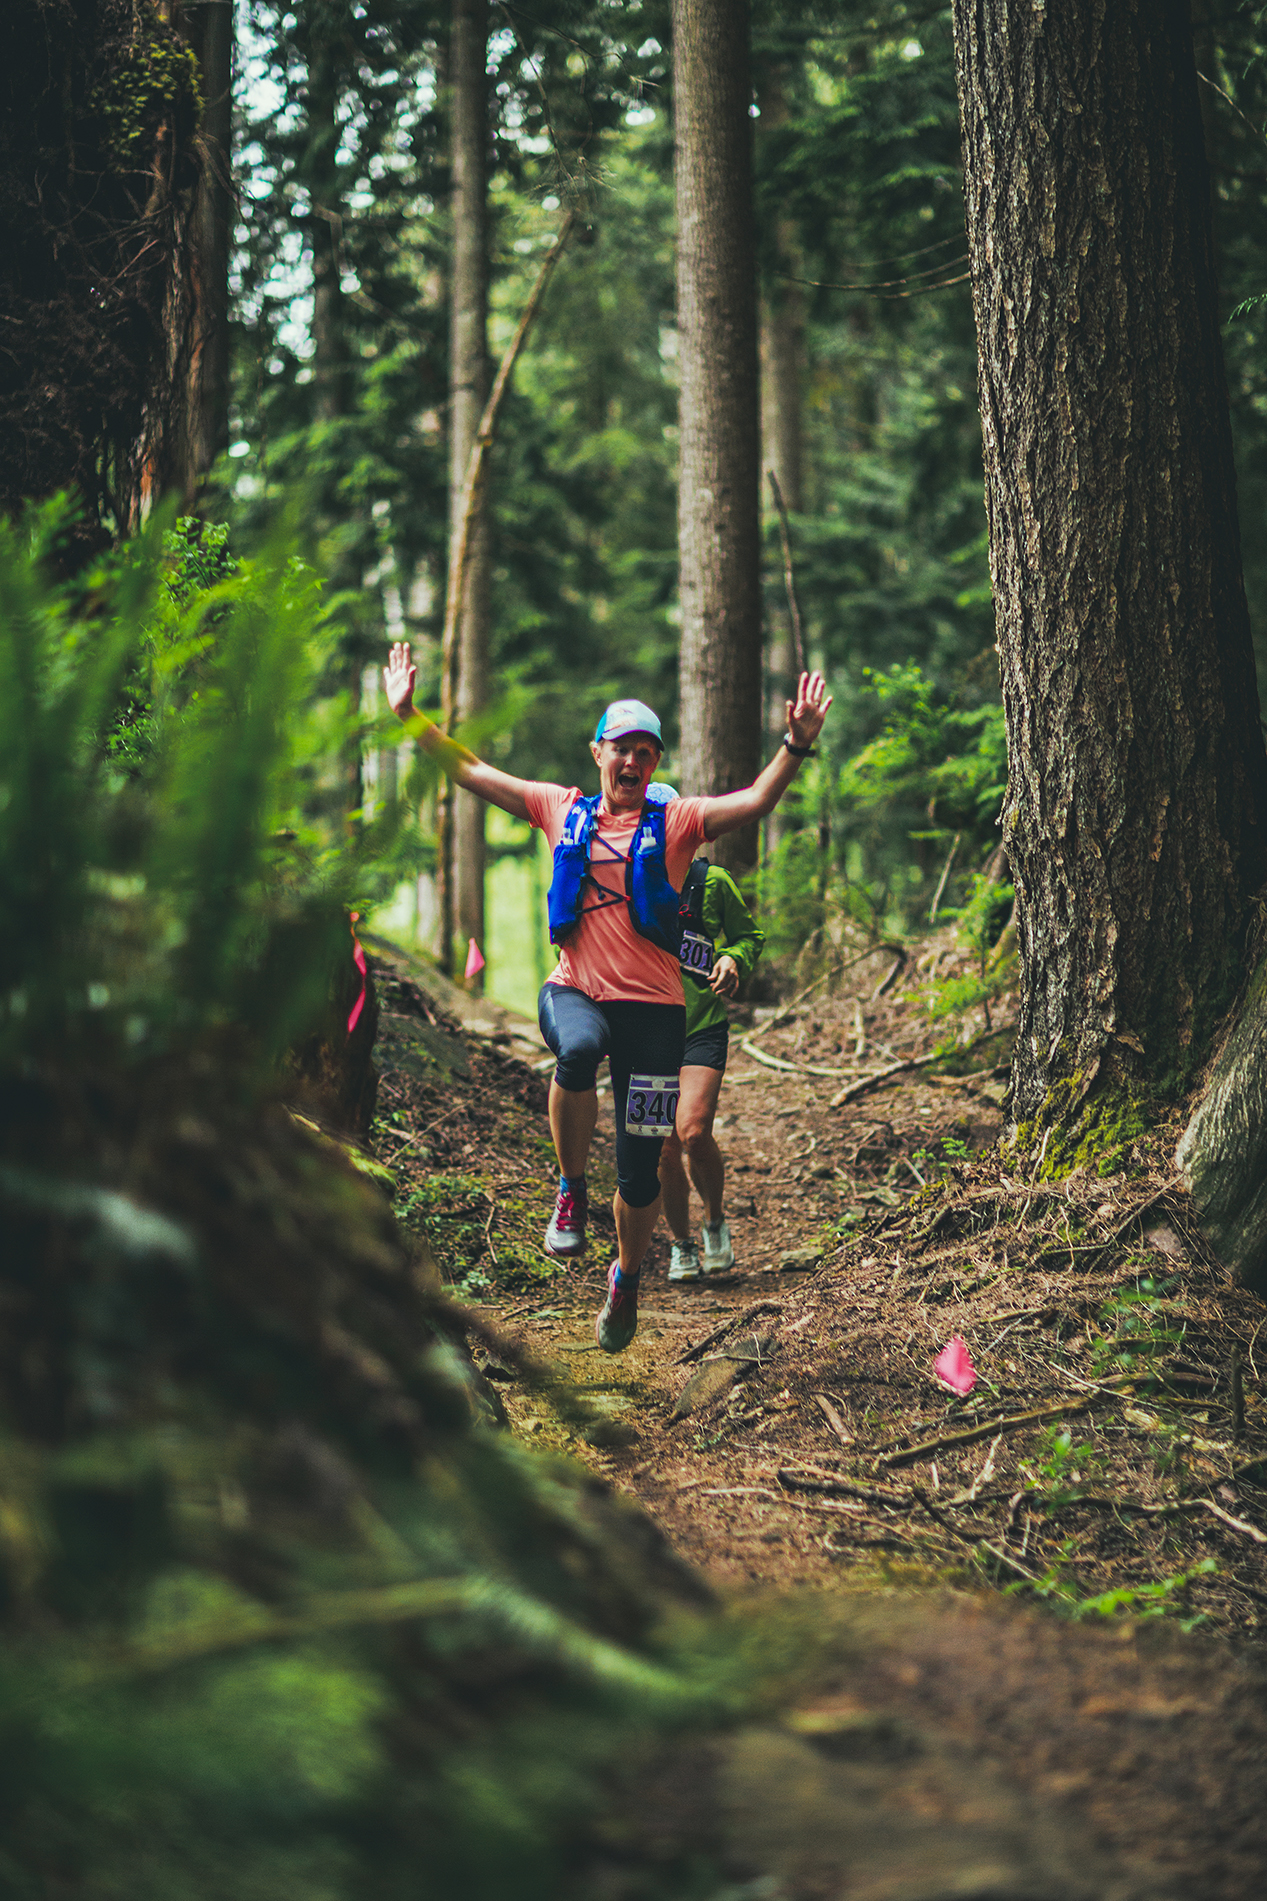 Fraser Valley Trail Races - Bear Mountain - IMG_2515 by Brice Ferre Studio - Vancouver Portrait Adventure and Athlete Photographer.jpg